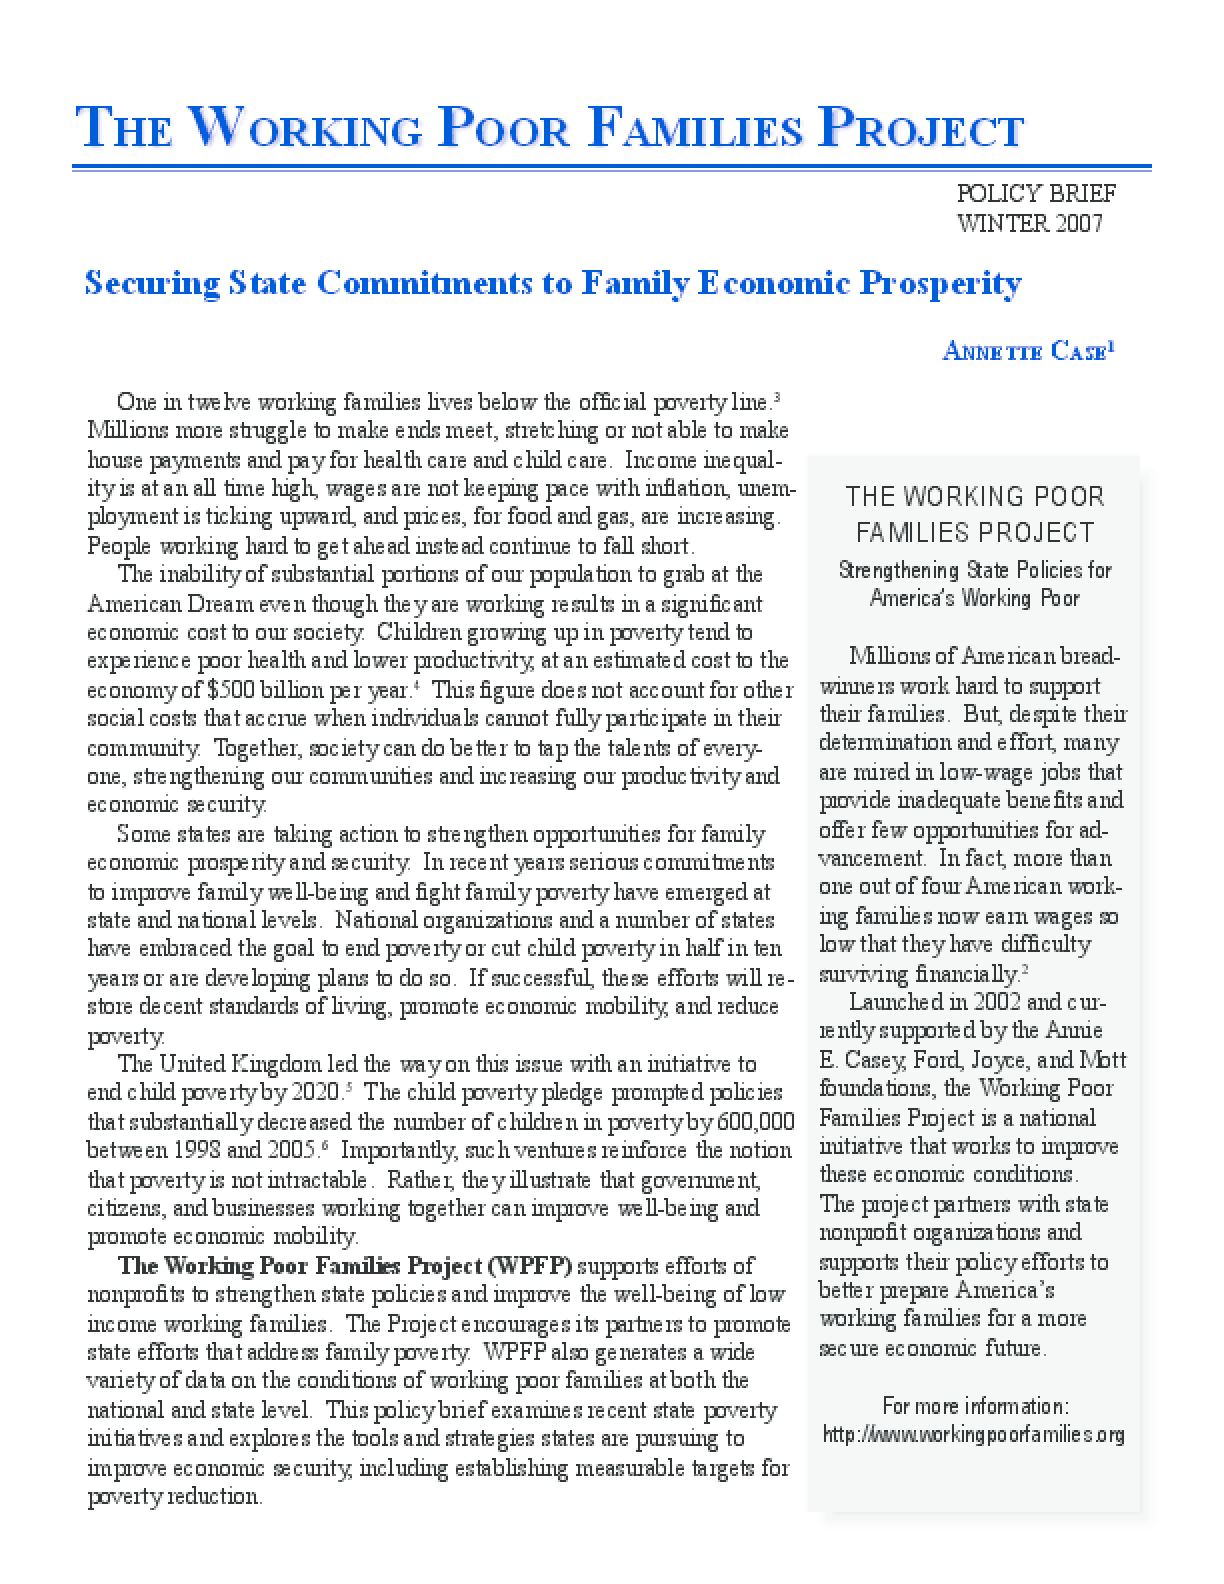 Securing State Commitments to Family Economic Prosperity